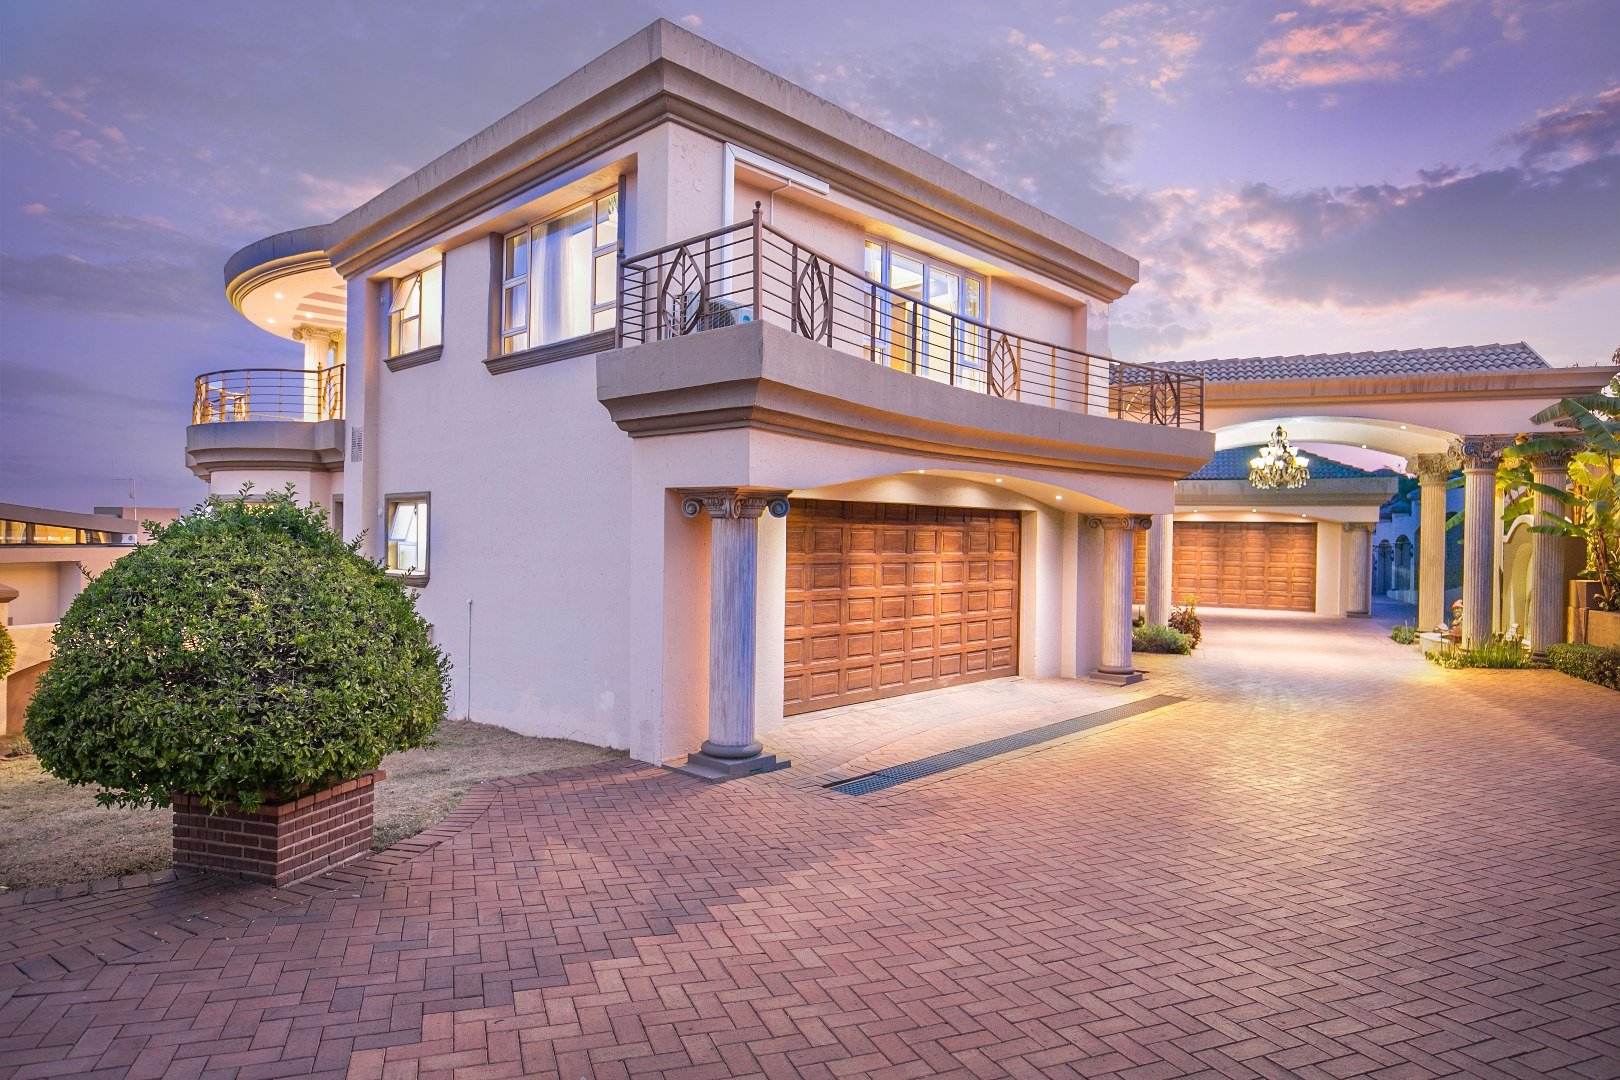 Alberton meyersdal eco estate property houses for sale for Estate house